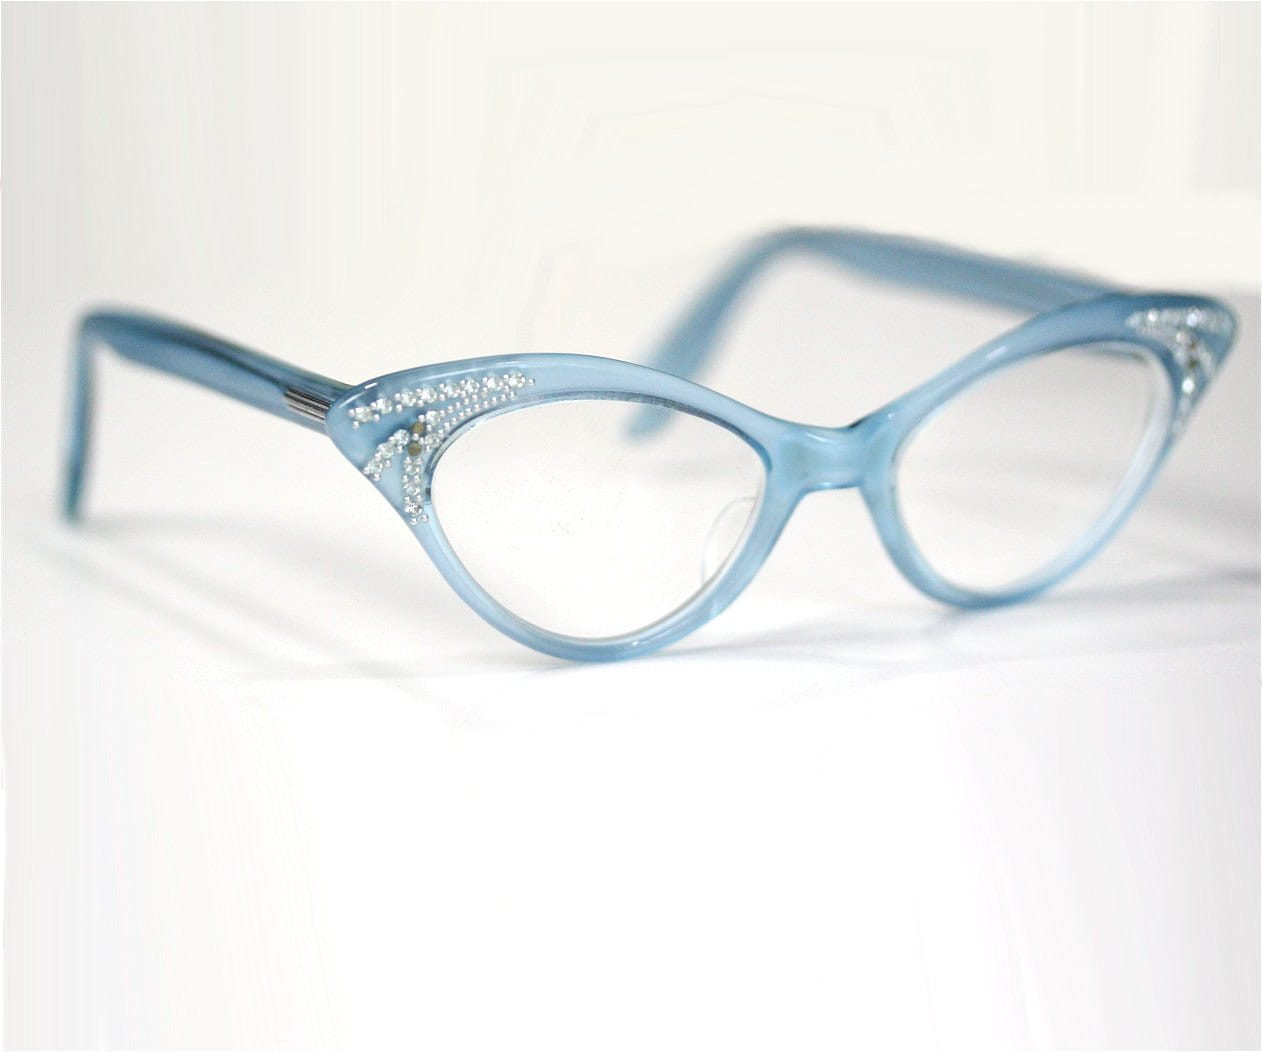 0516a3de552 Cateye Eyeglass Frames With Jewels